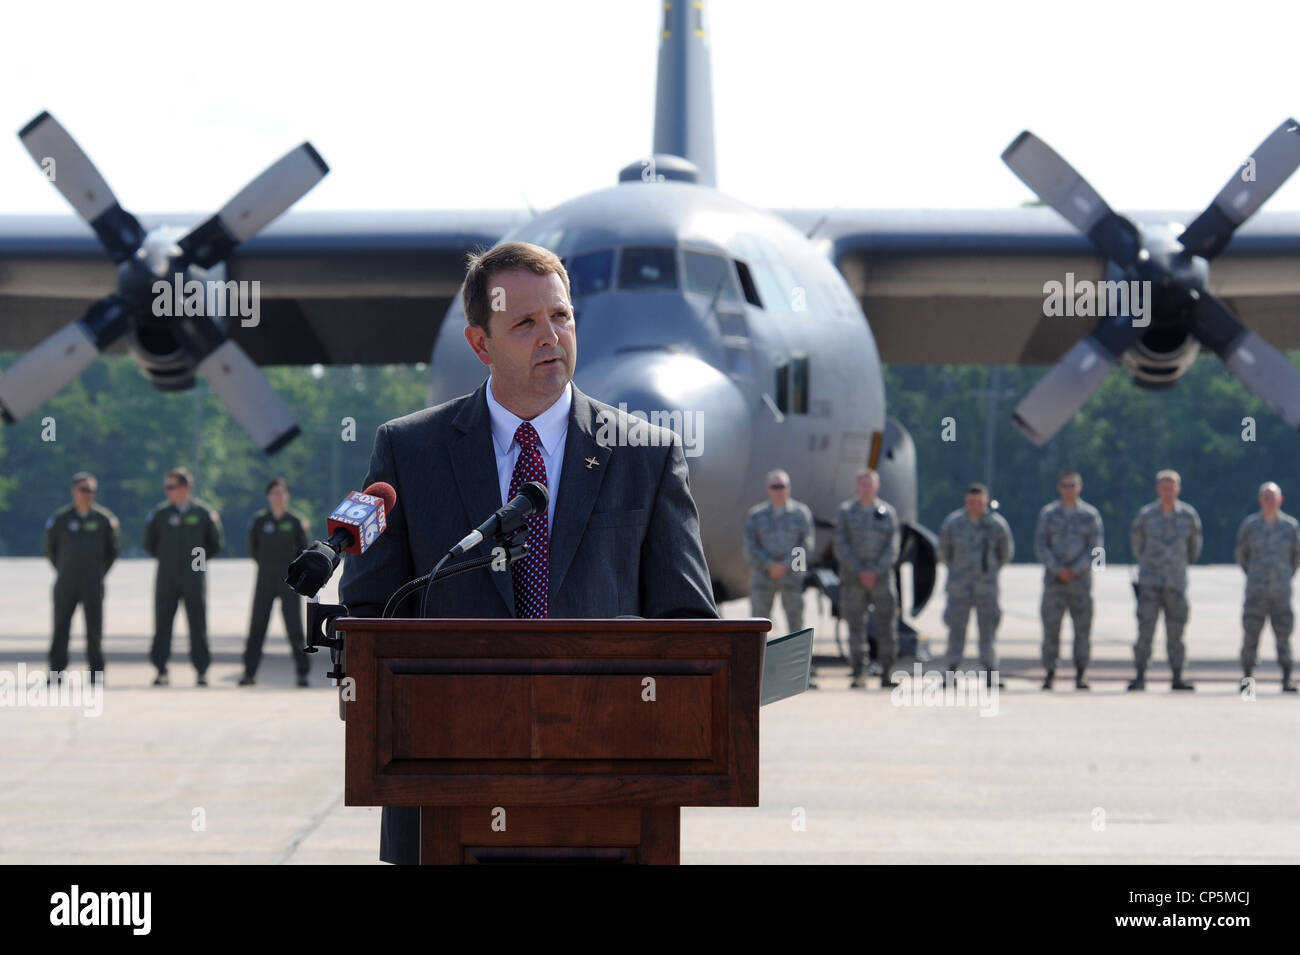 Fred Ross, vice president of C-130 Programs for Lockheed Martin, speaks to an audience attending the retirement - Stock Image